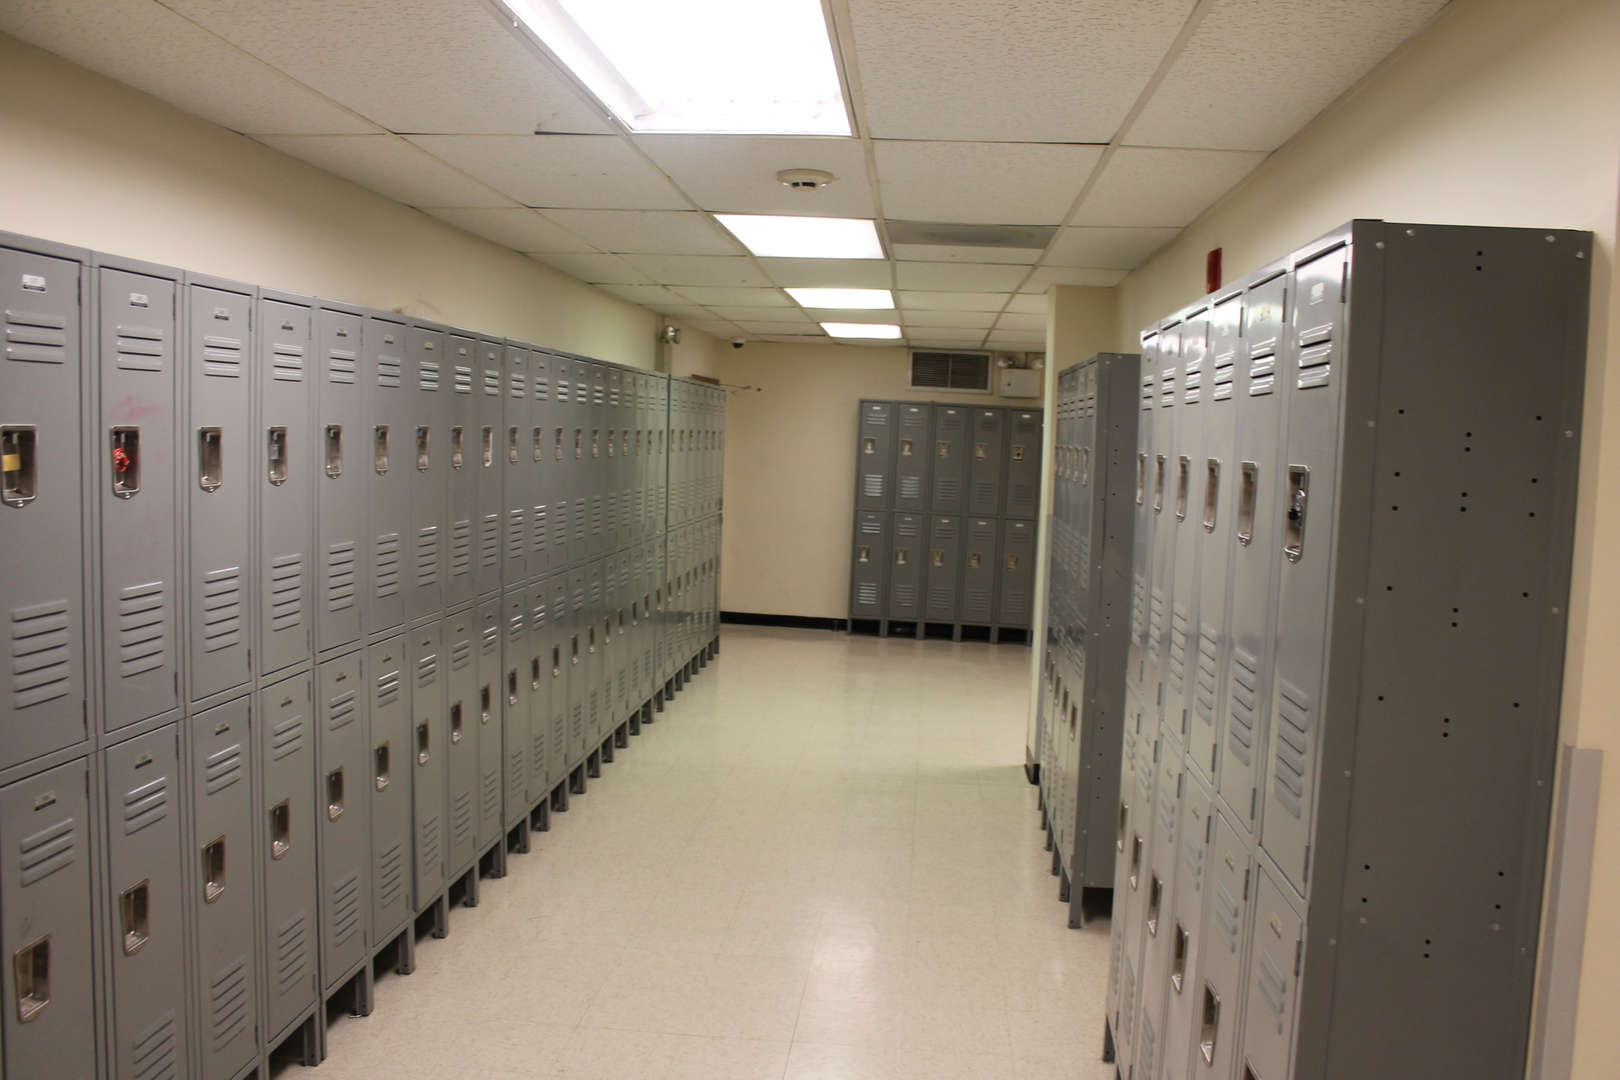 Lockers in a school hallway